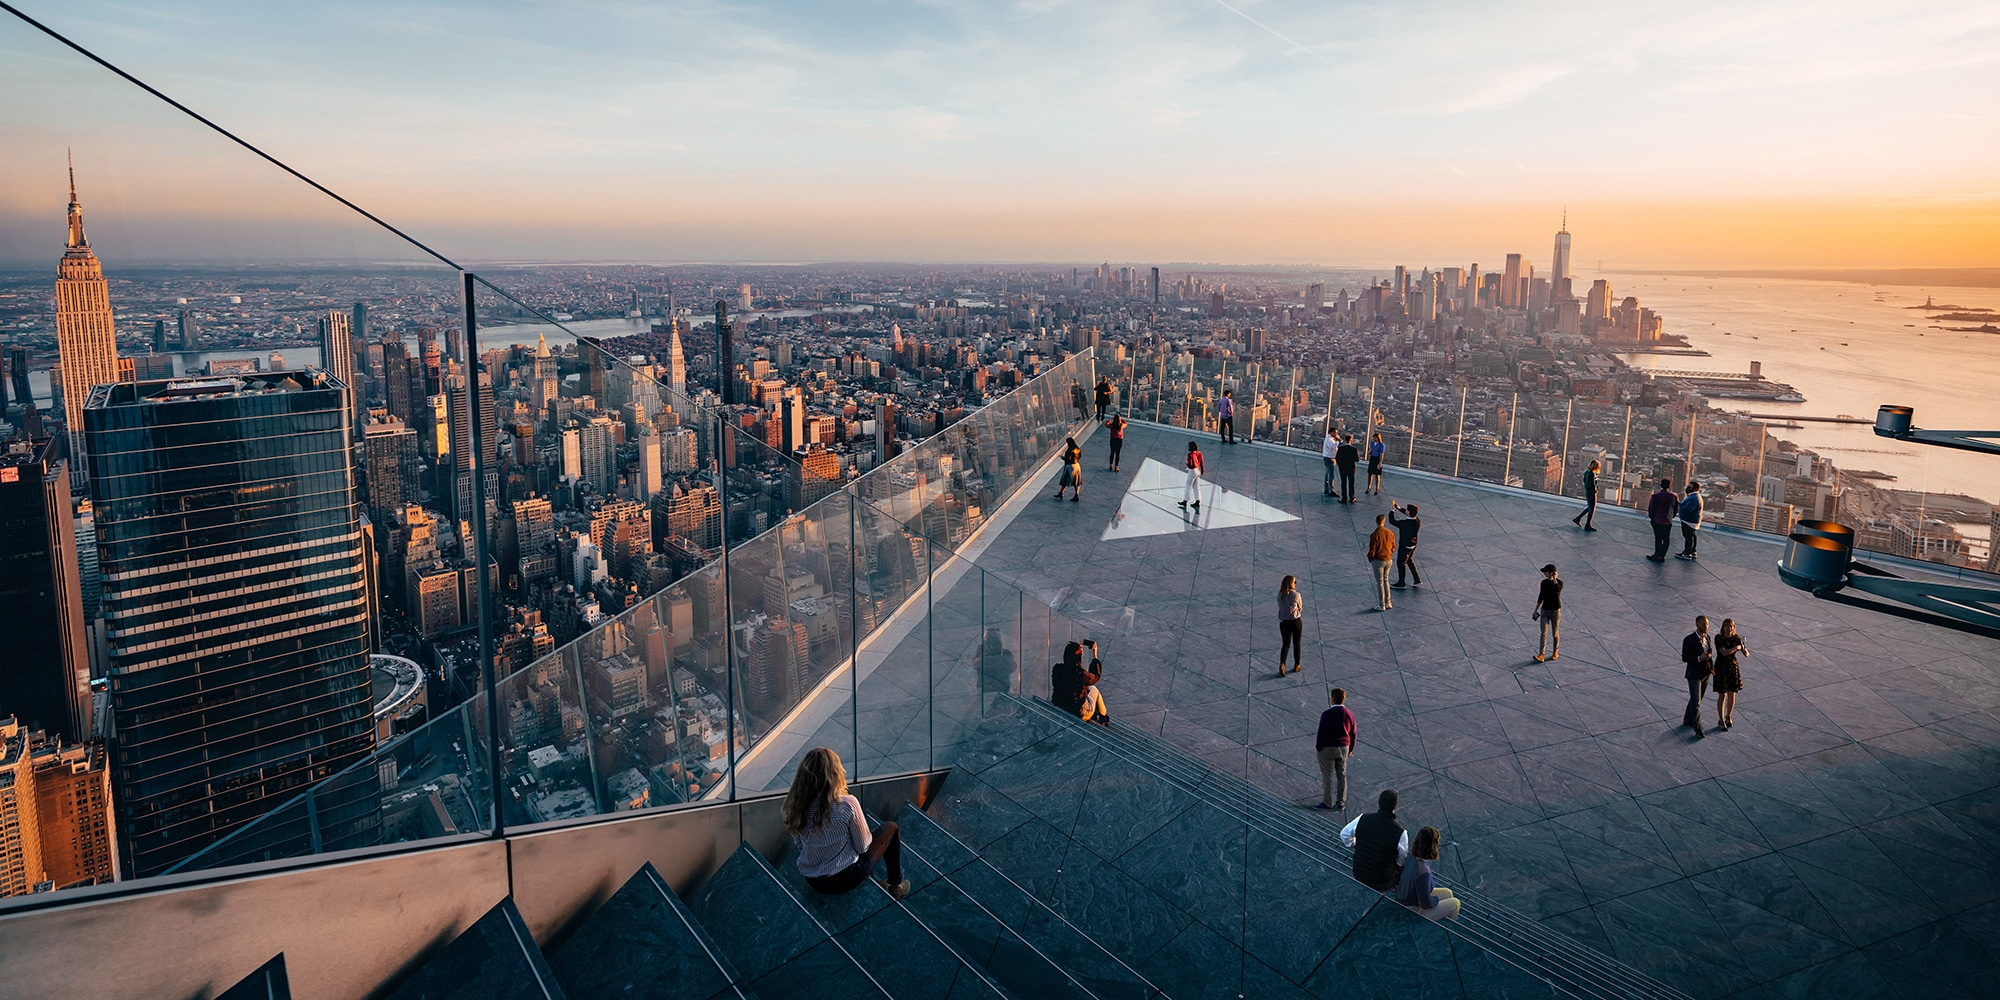 View from Edge observation deck at 30 Hudson Yards in New York. Overlooking Brooklyn and the Hudson River at sunrise.